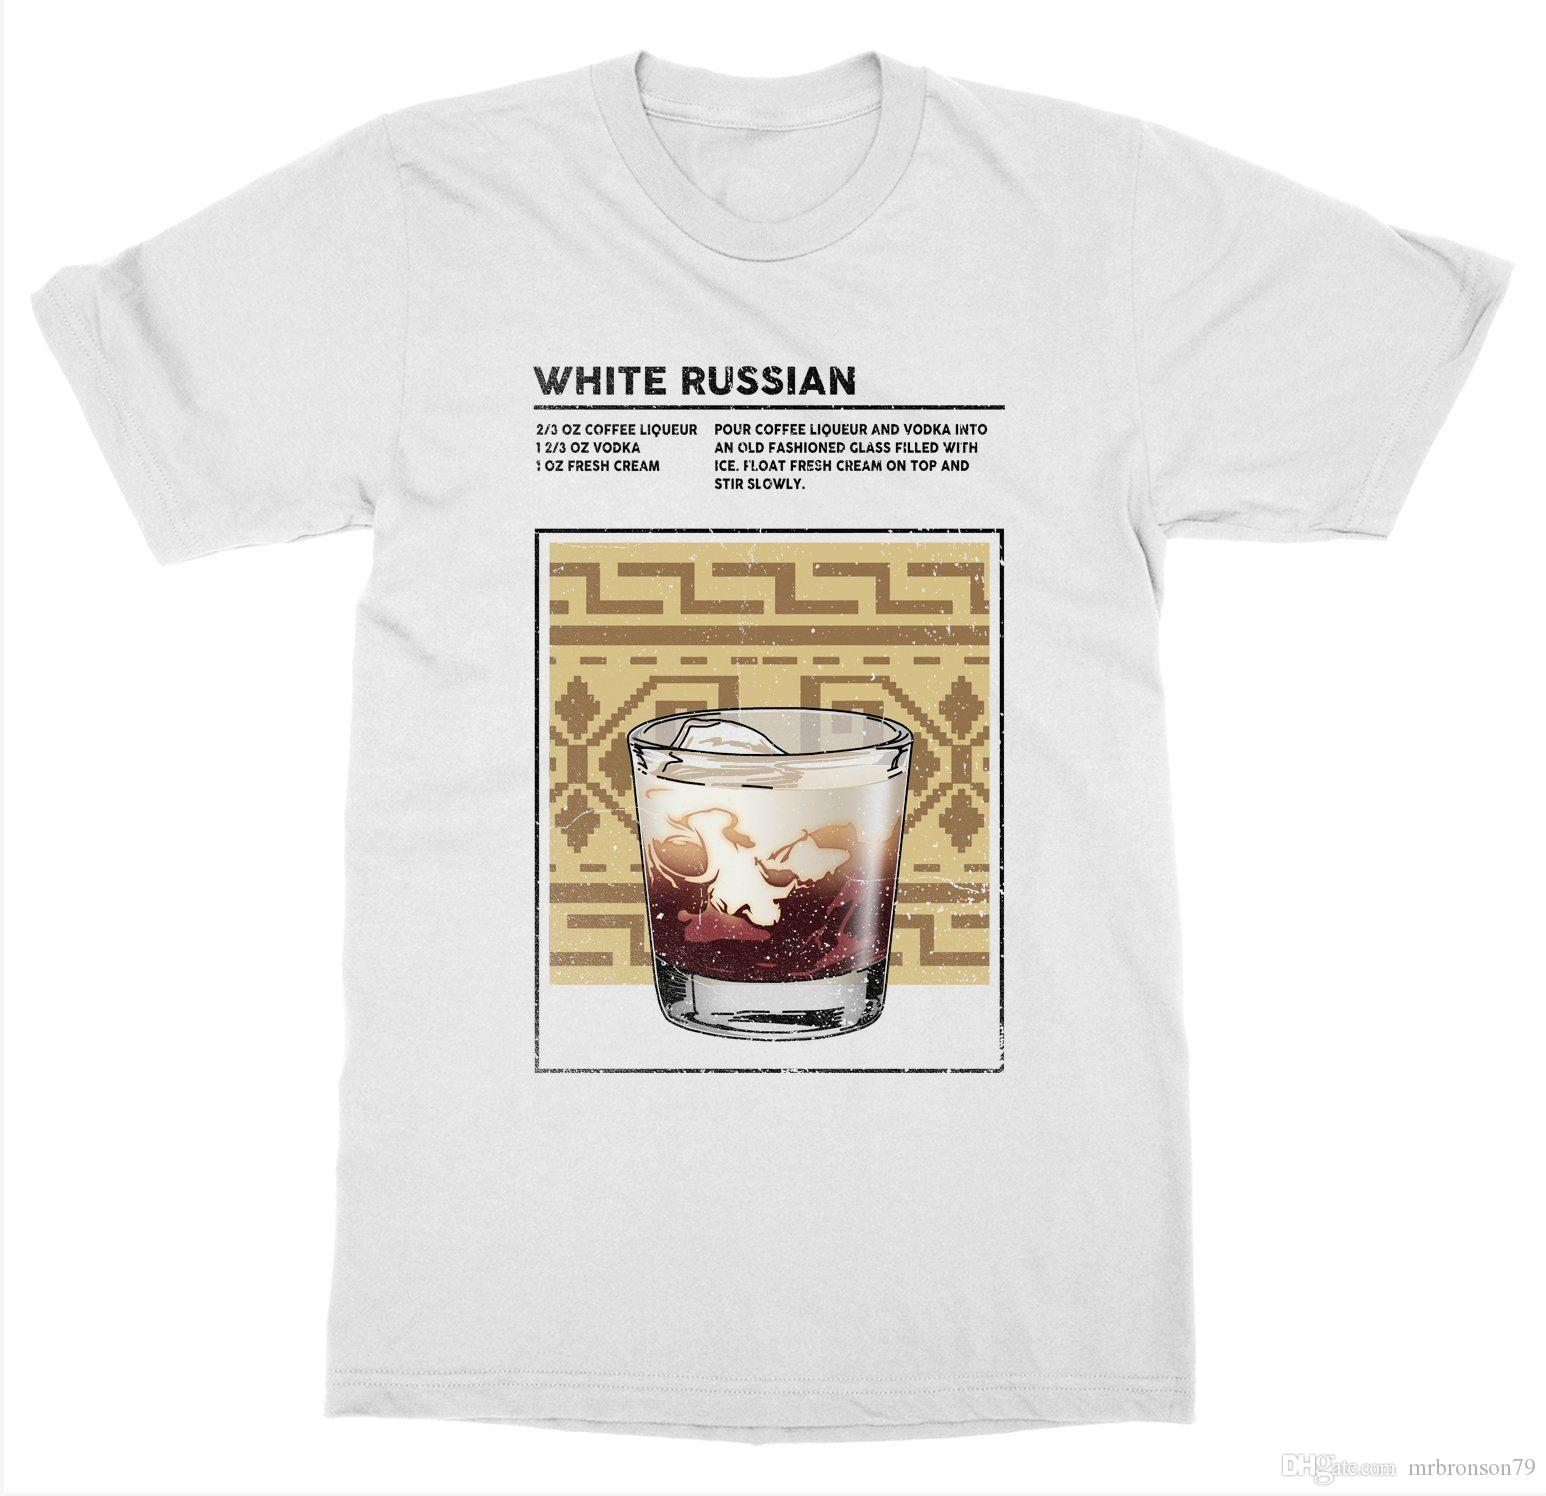 ce1d0afd White Russian T Shirt Mixed Drink Cocktail Alcohol Bartender Booze Happy  Hour Fun Tee Shirts Silly T Shirts From Mrbronson79, $10.86| DHgate.Com